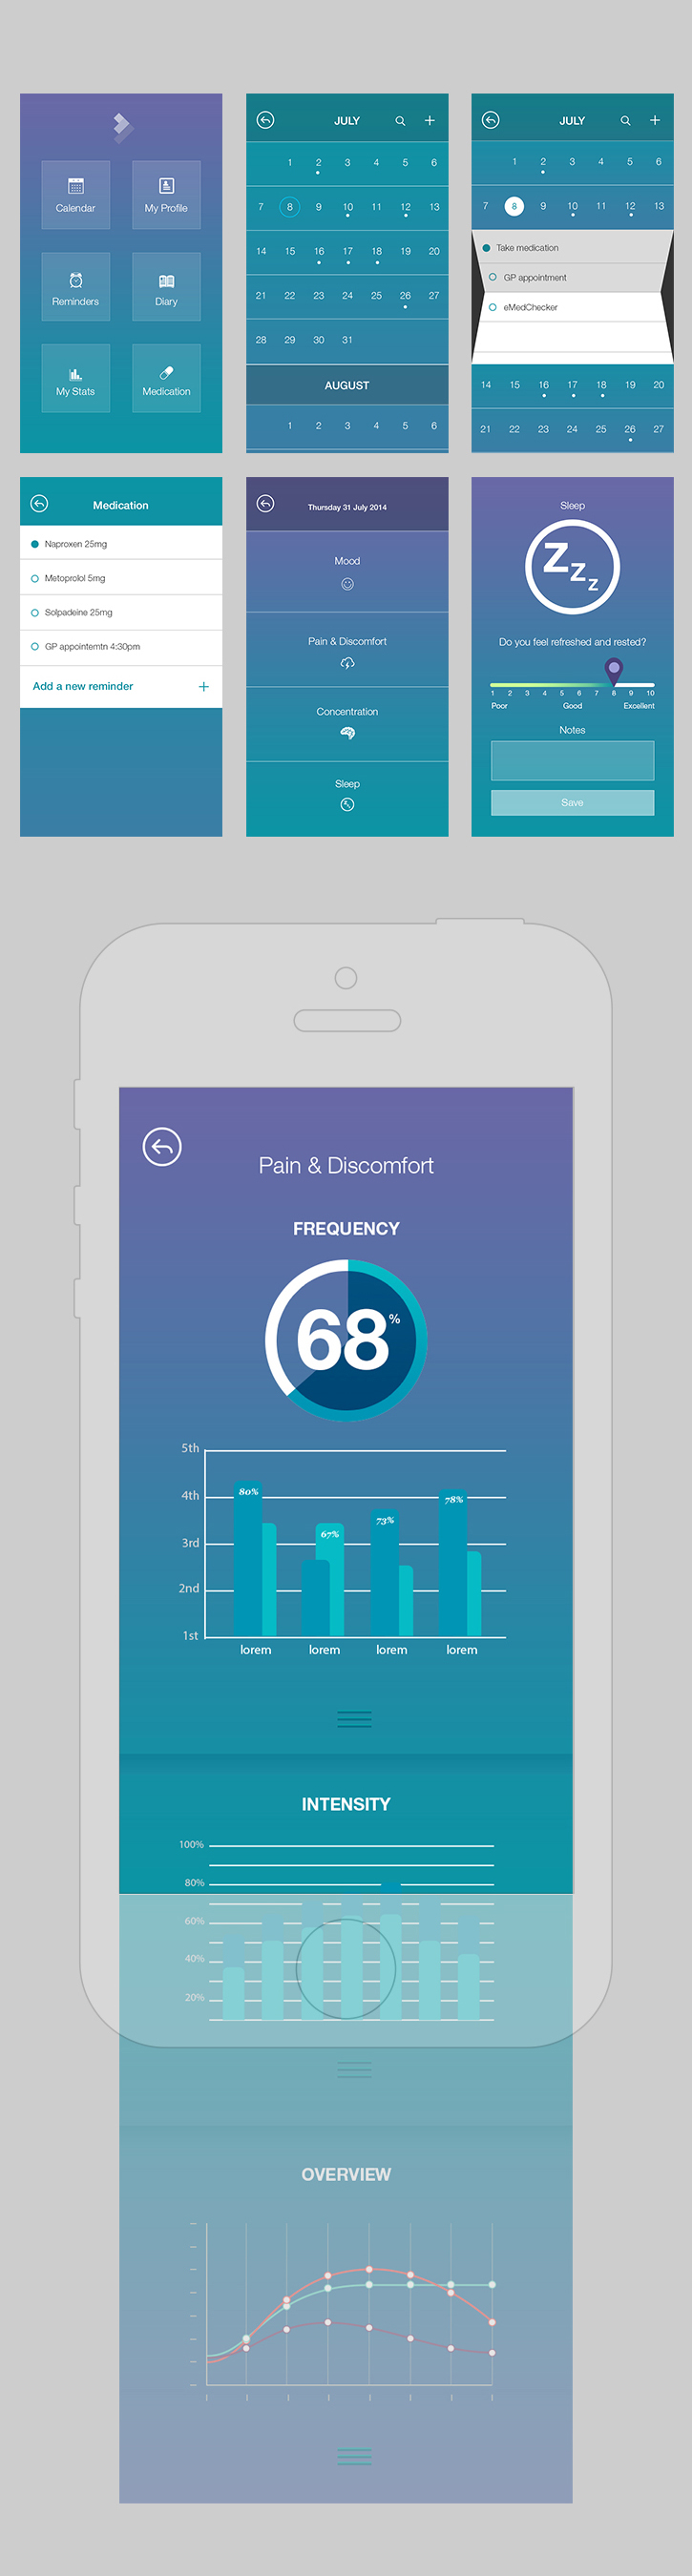 MedTrack Health Tracker App on Behance